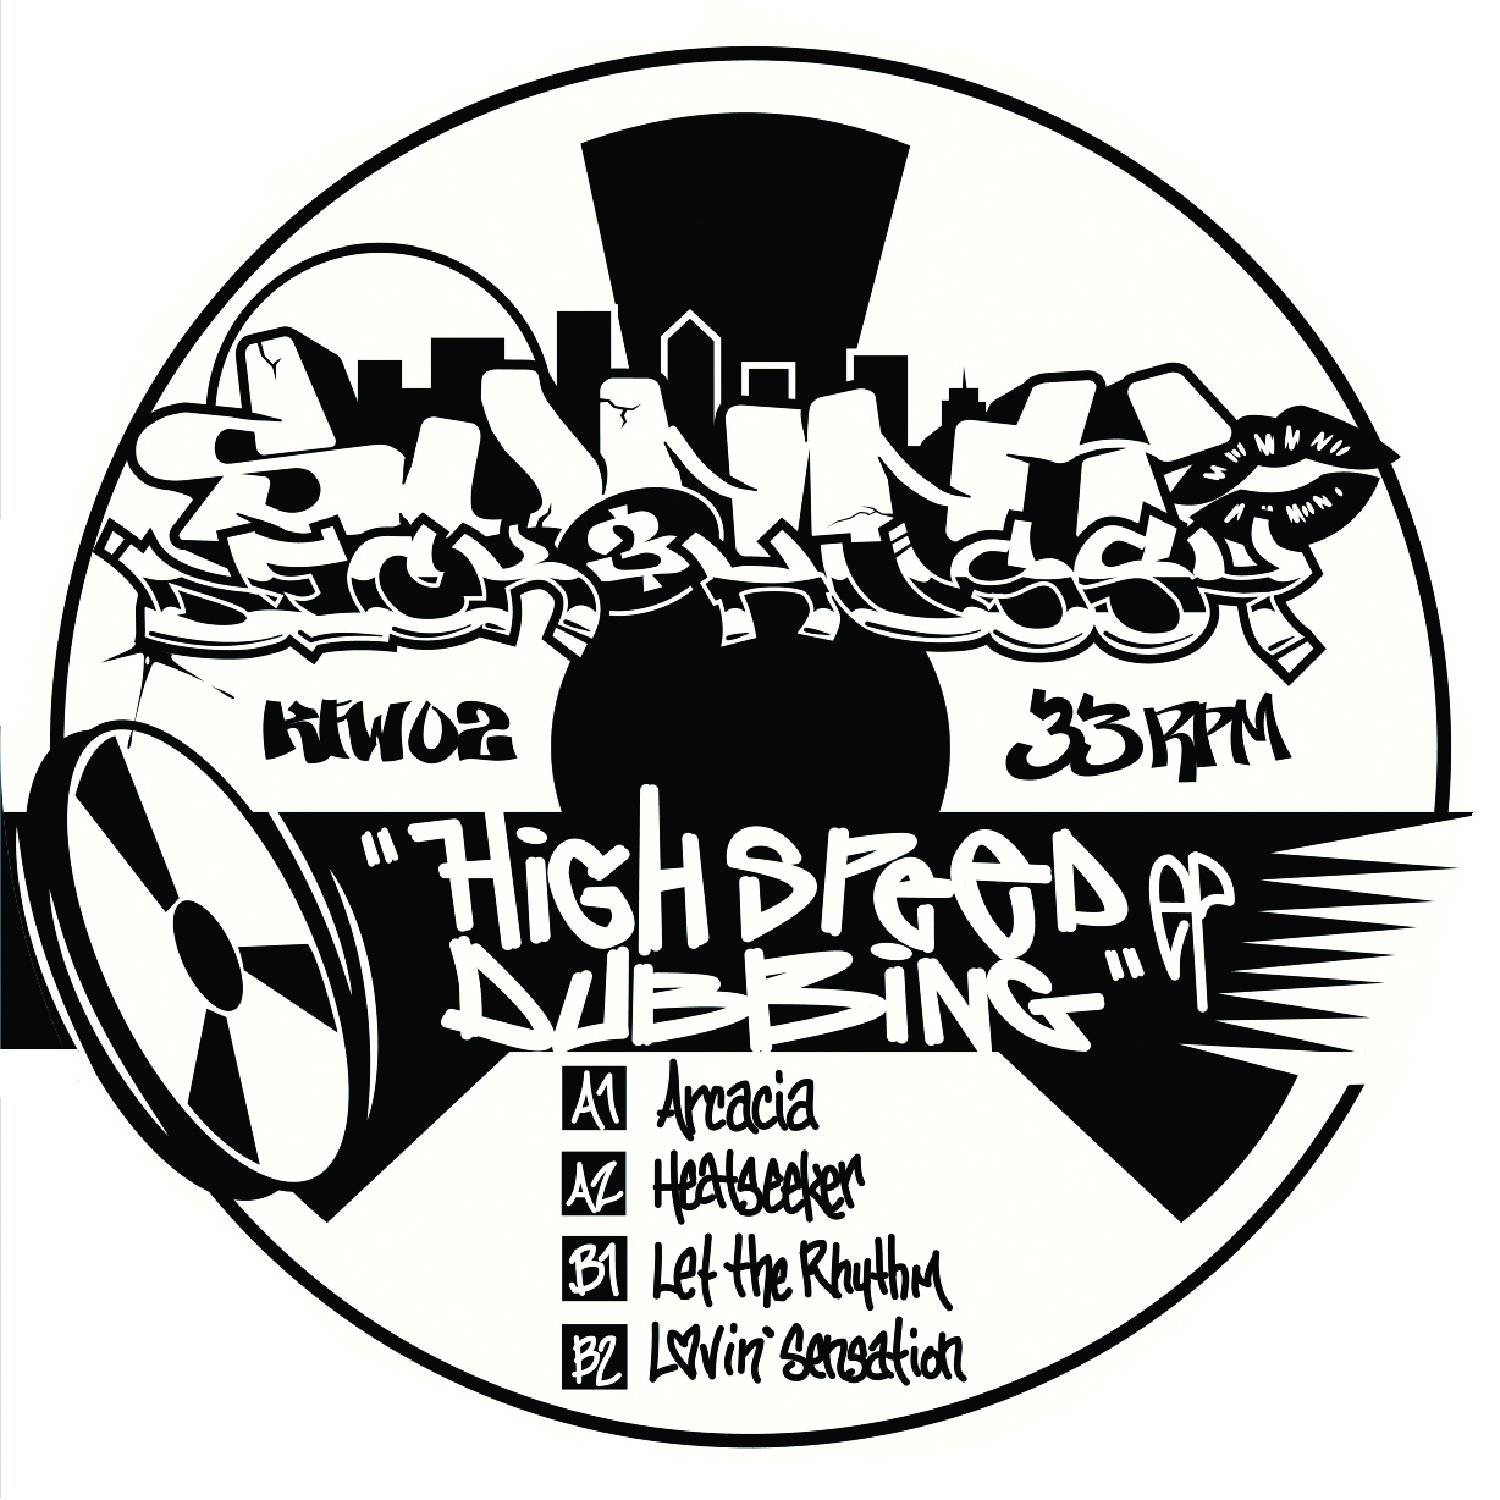 [KFW002] Sunny & Deck Hussy - High Speed Dubbing EP (Digital Only)